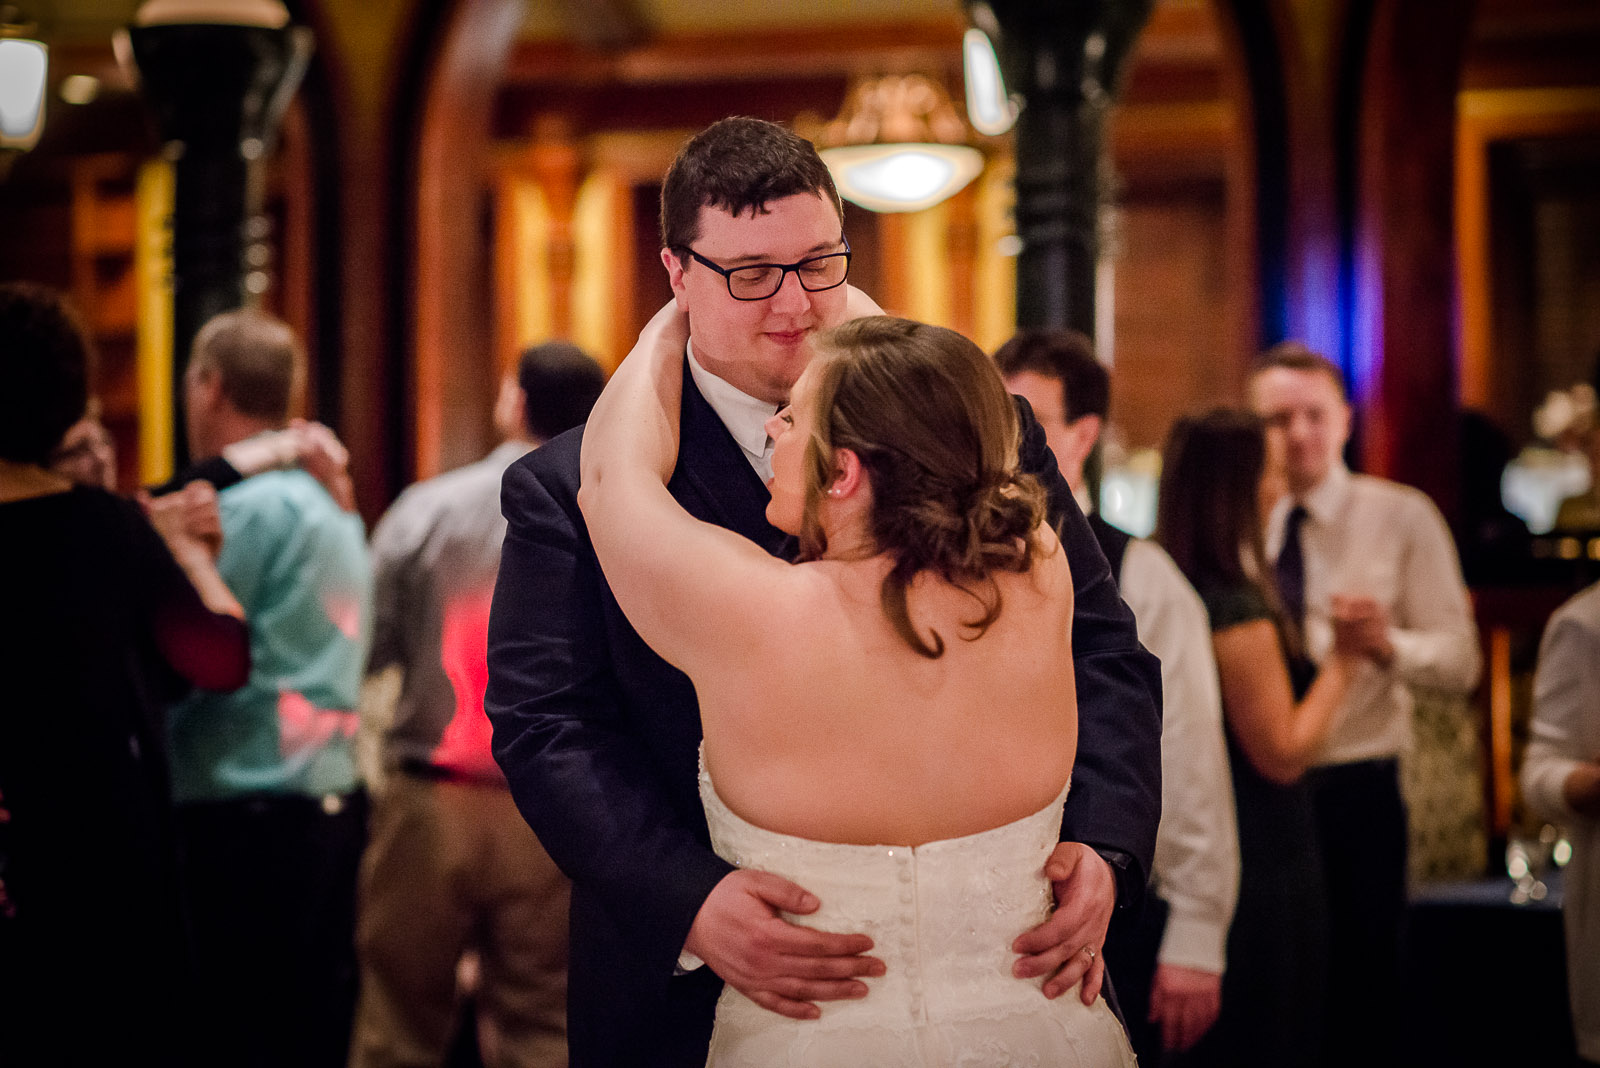 Eric_and_Christy_Photography_Blog_Wedding_Karen_Nick-58